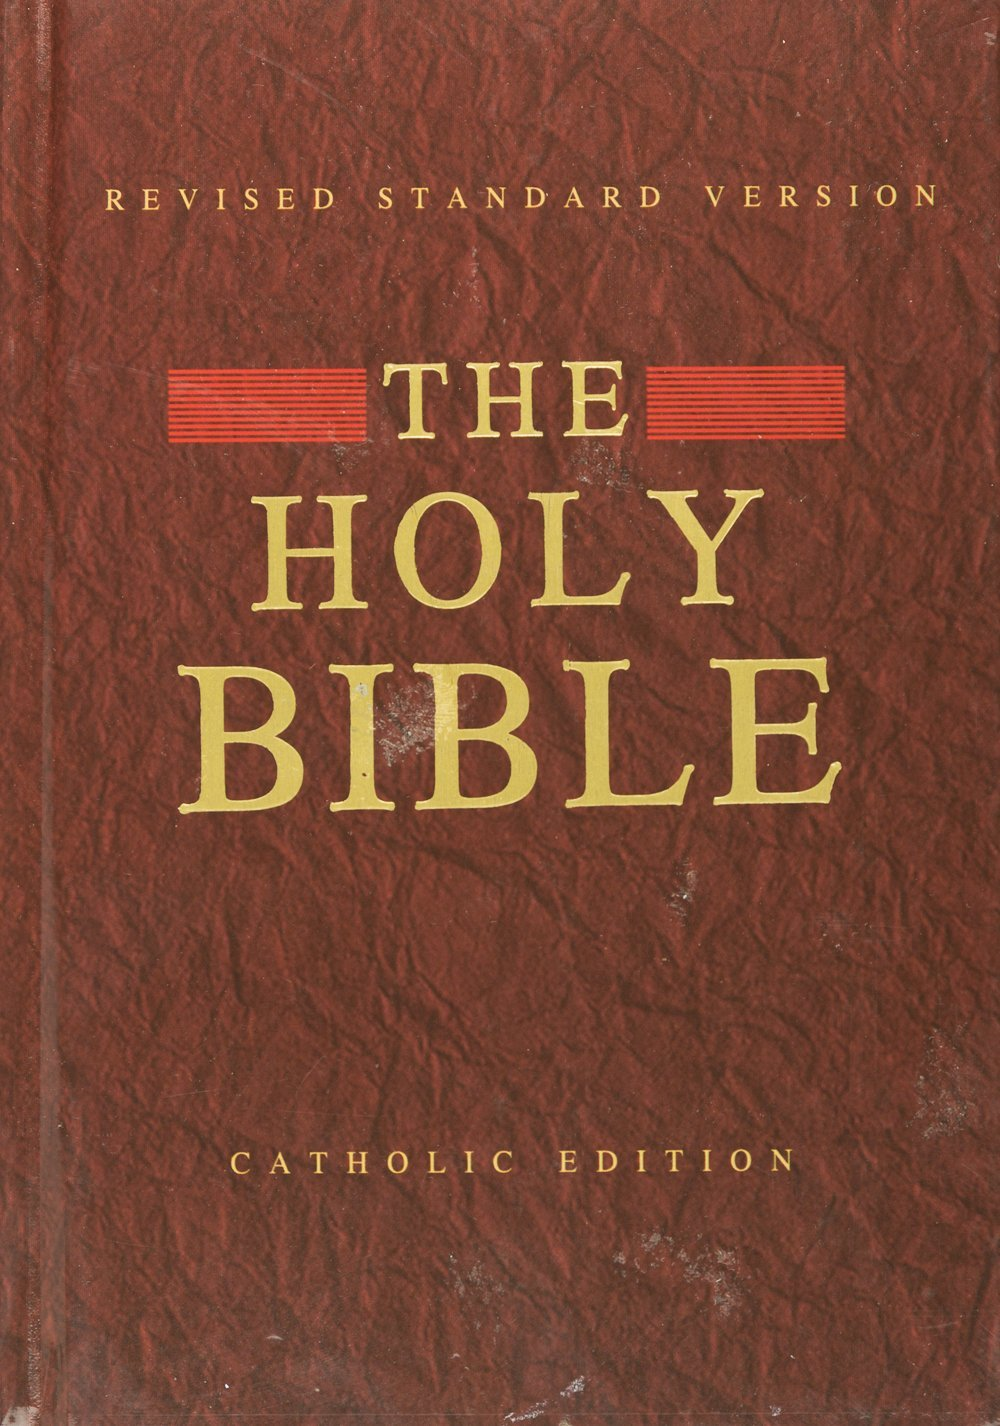 Buy The Holy Bible Revised Standard Version Catholic Edition Rsv Ce Book Online At Low Price In India Review Rating Amazon New Pdf Free Download